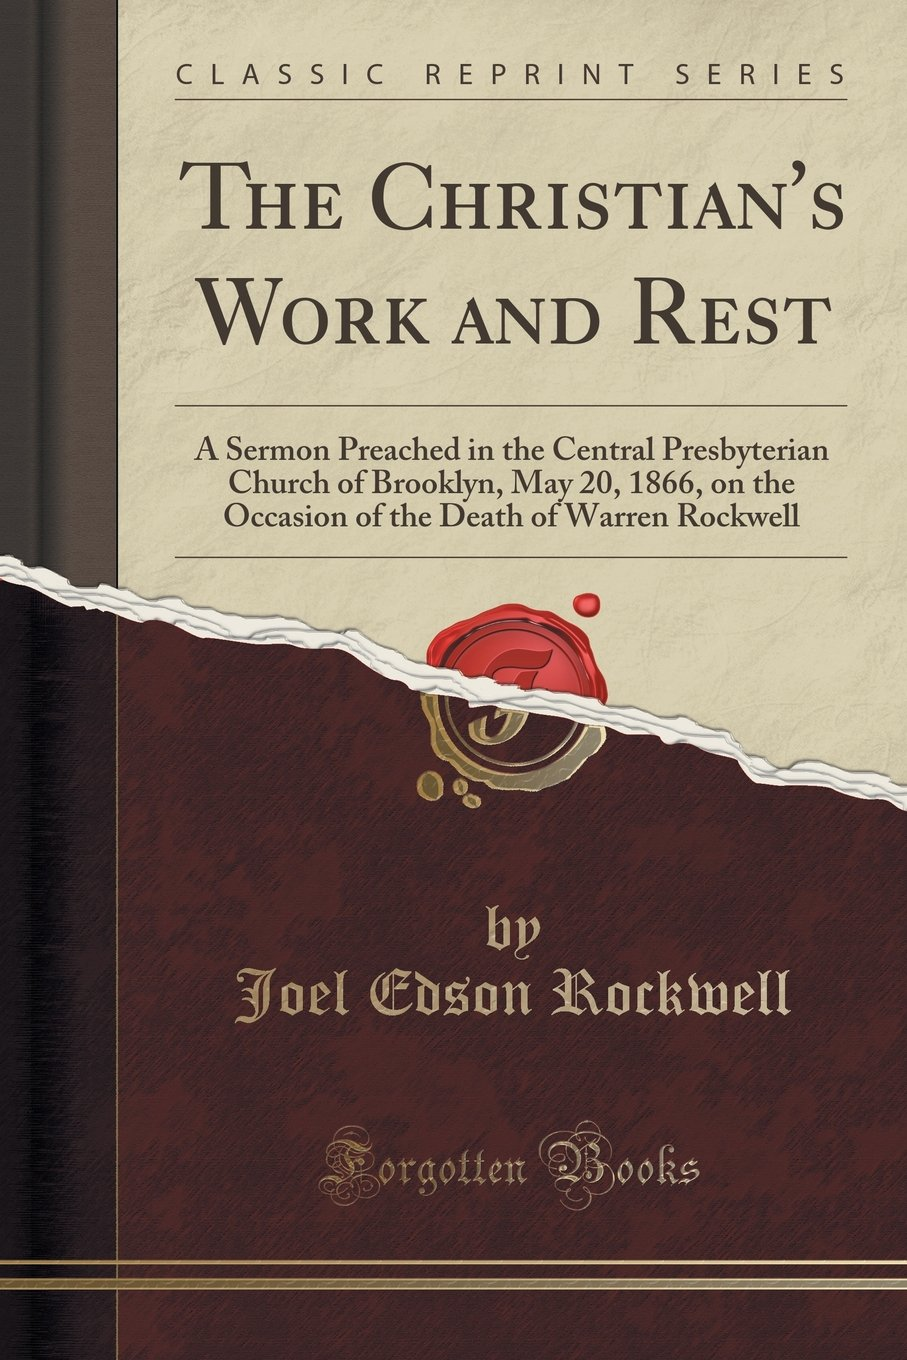 The Christian's Work and Rest: A Sermon Preached in the Central Presbyterian Church of Brooklyn, May 20, 1866, on the Occasion of the Death of Warren Rockwell (Classic Reprint) pdf epub